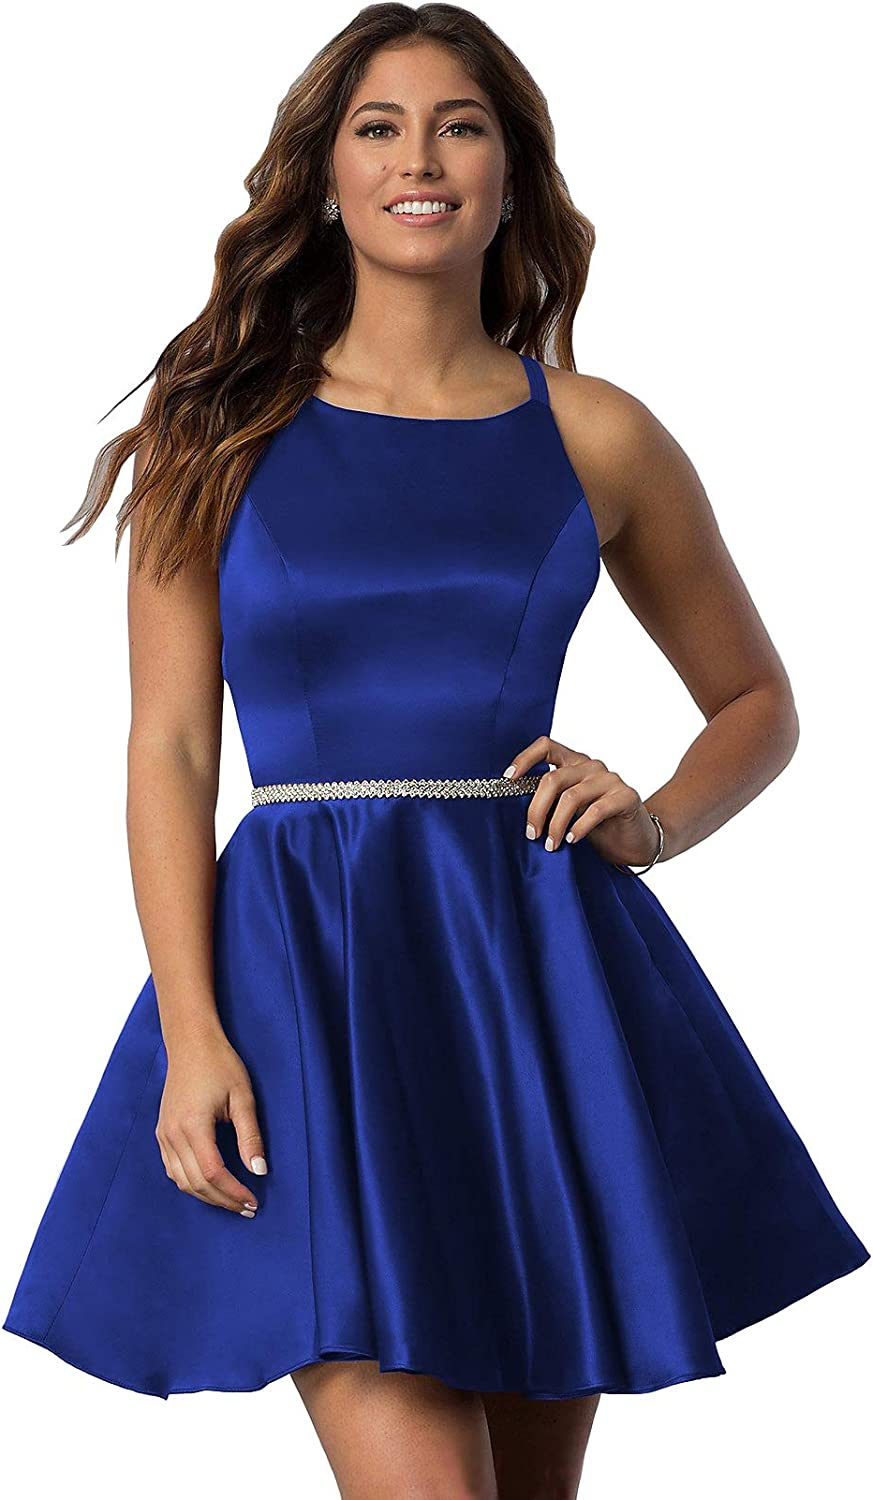 YORFORMALS Women's Scoop Neck Satin Open-Back Homecoming Dress Short Evening Party Gown with Pockets